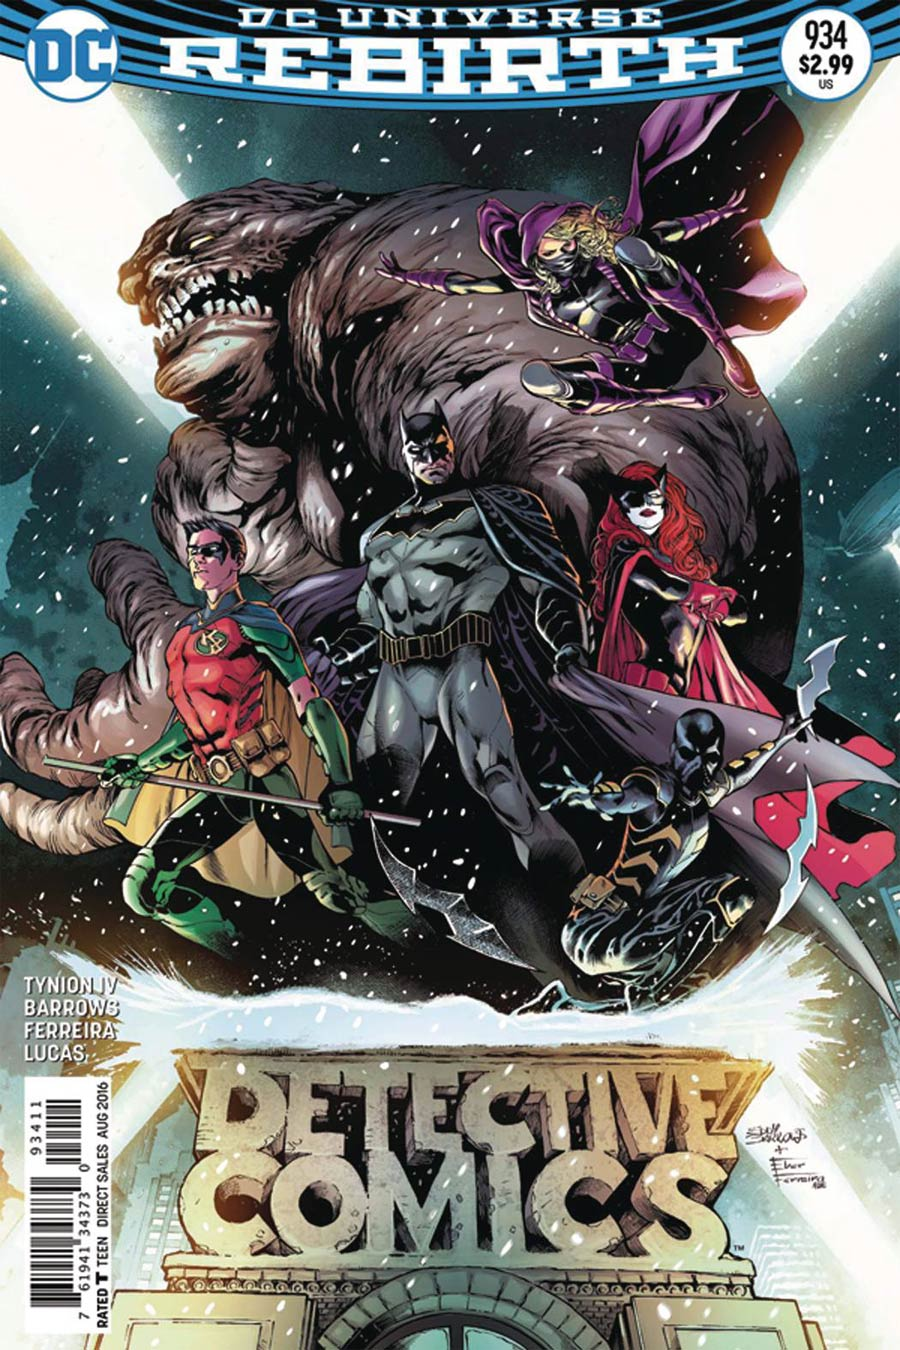 Detective Comics Vol 2 #934 Cover F DF Ultra-Limited Silver Signature Series Signed By James Tynion IV